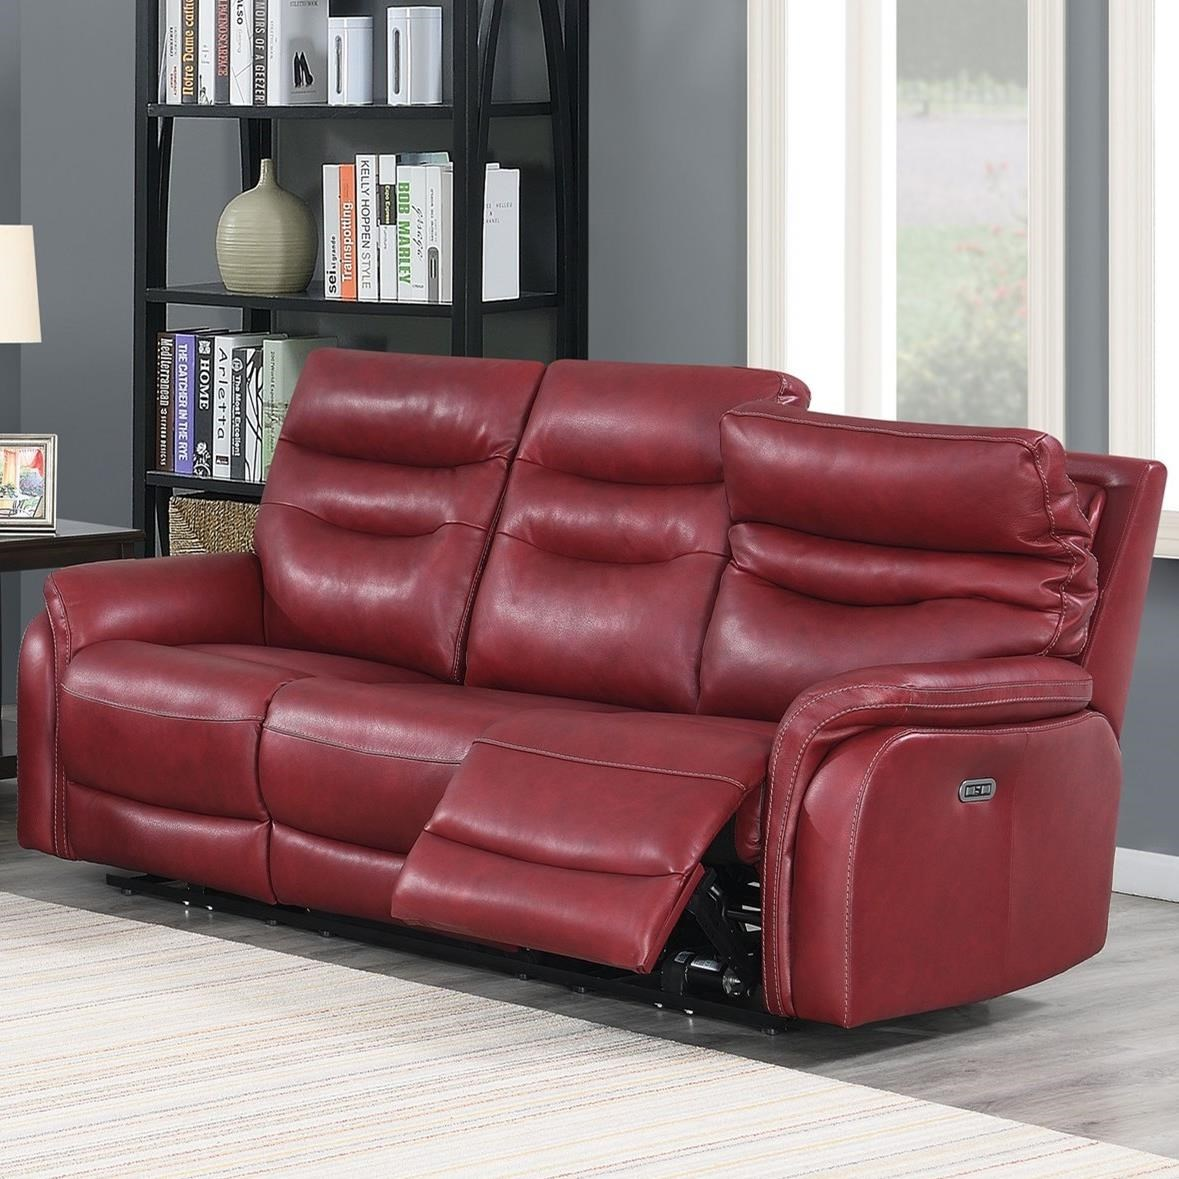 Fortuna Power Reclining Sofa by Steve Silver at Northeast Factory Direct